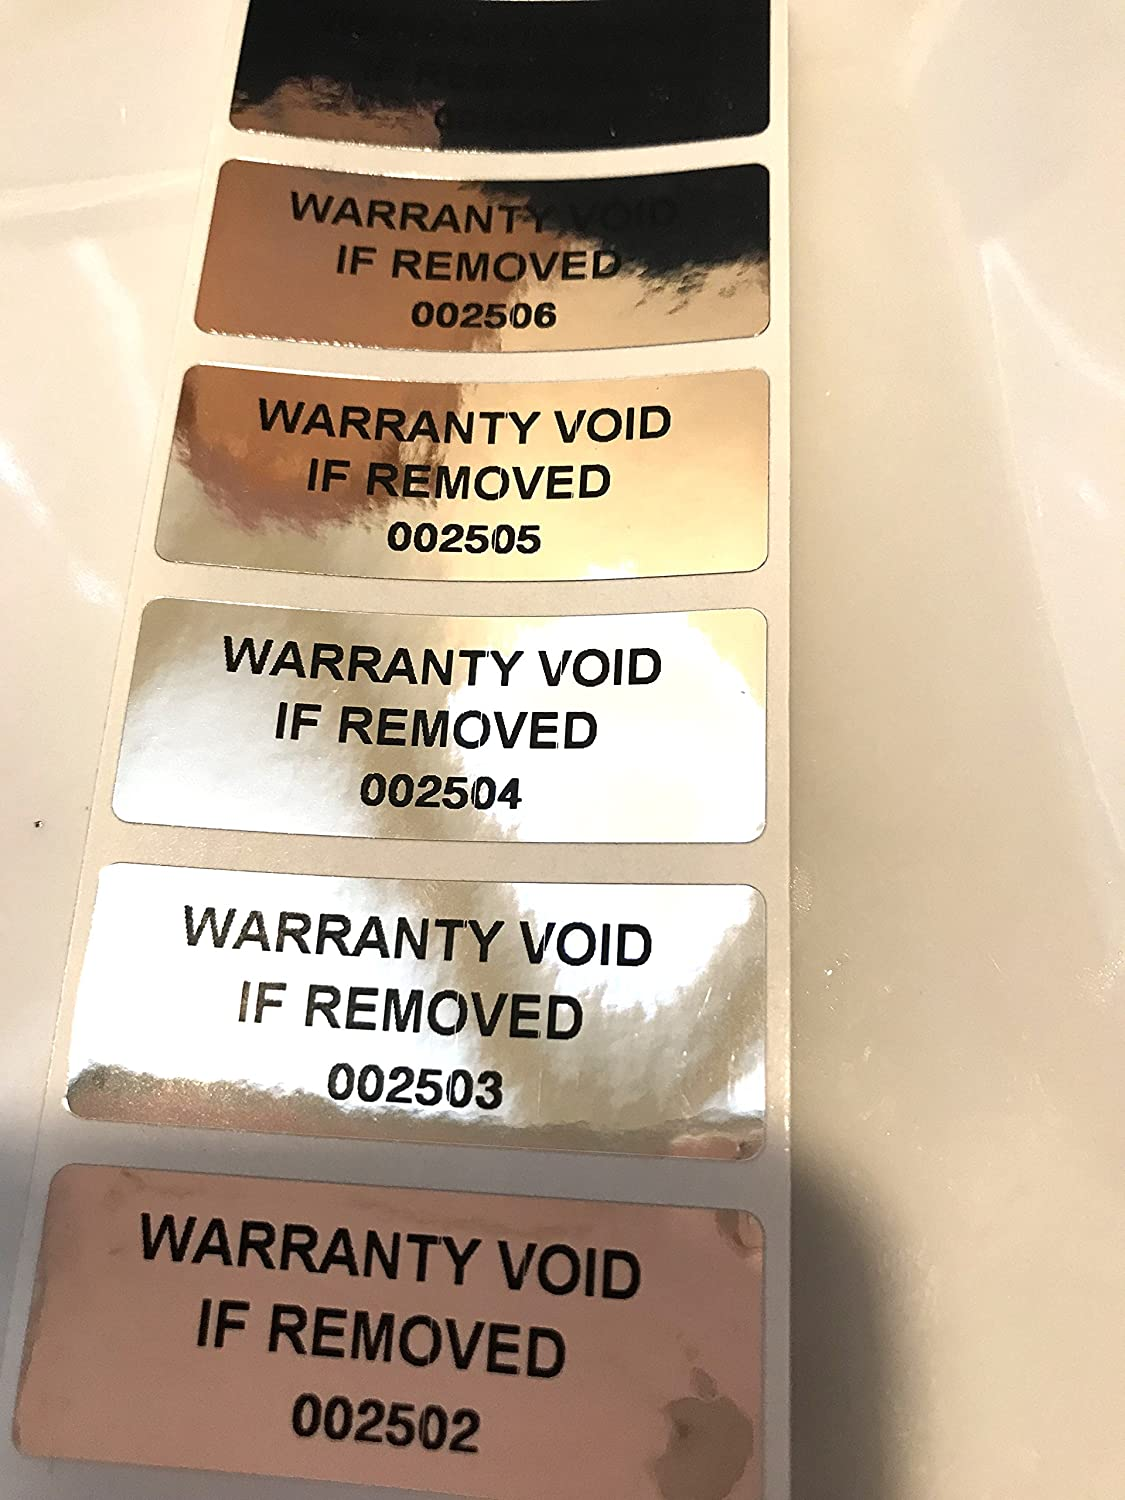 "1,000 Tamper Evident Foil Security Labels Sticker Seals""Warranty Void wenn Removed"" + Unique/Numbered, Rectangle 2"" X .75"" (51Mm X 19Mm)."